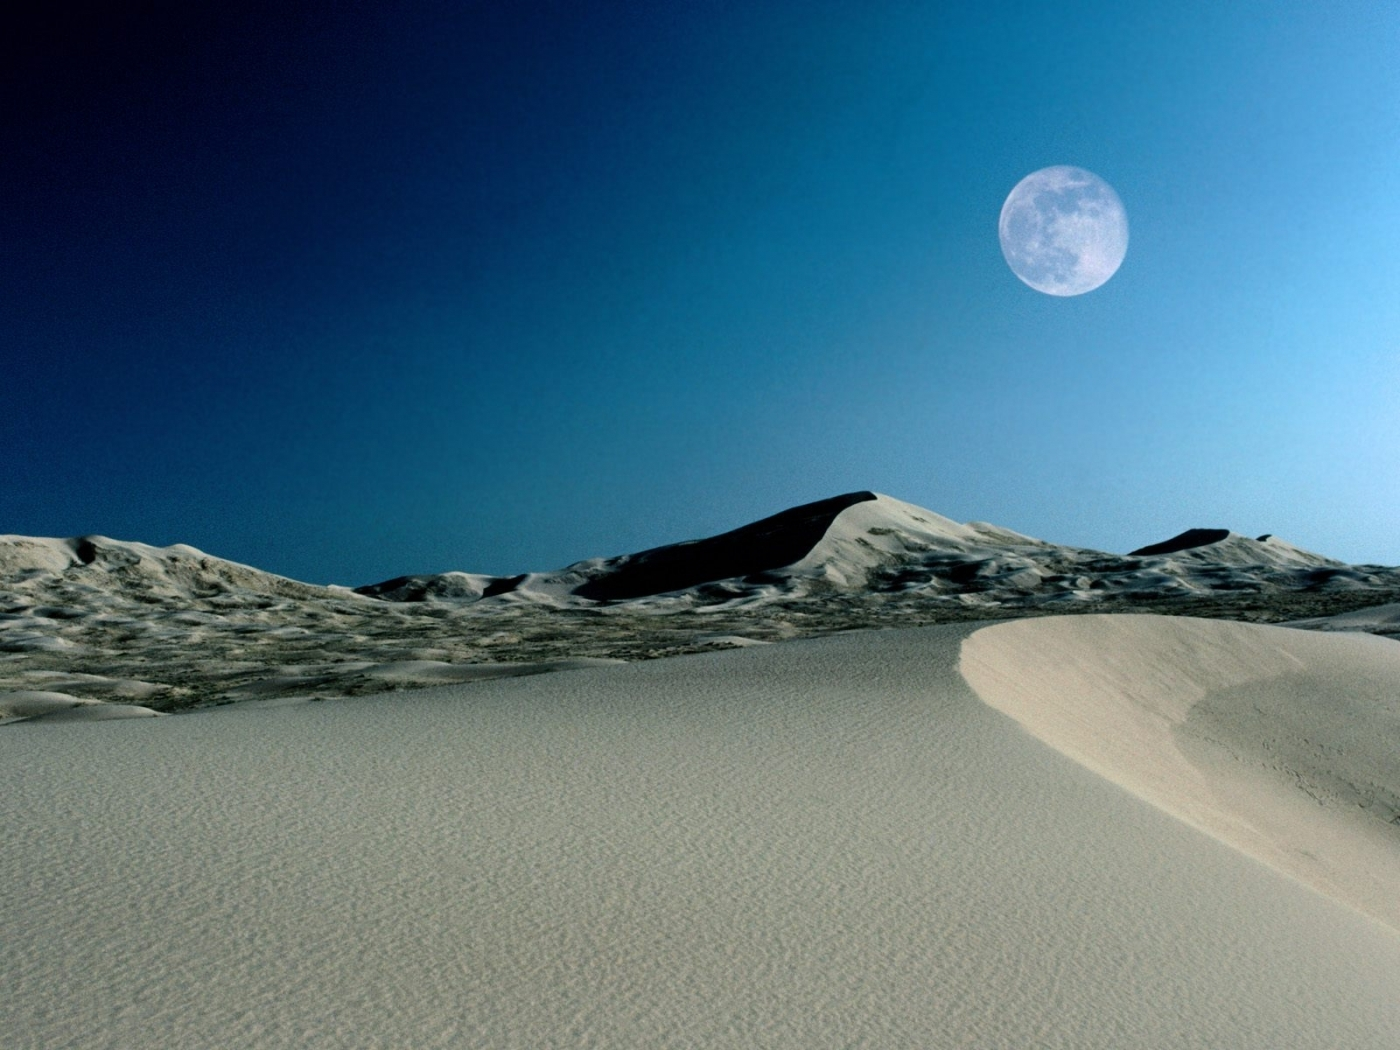 29197 download wallpaper Landscape, Moon, Desert screensavers and pictures for free